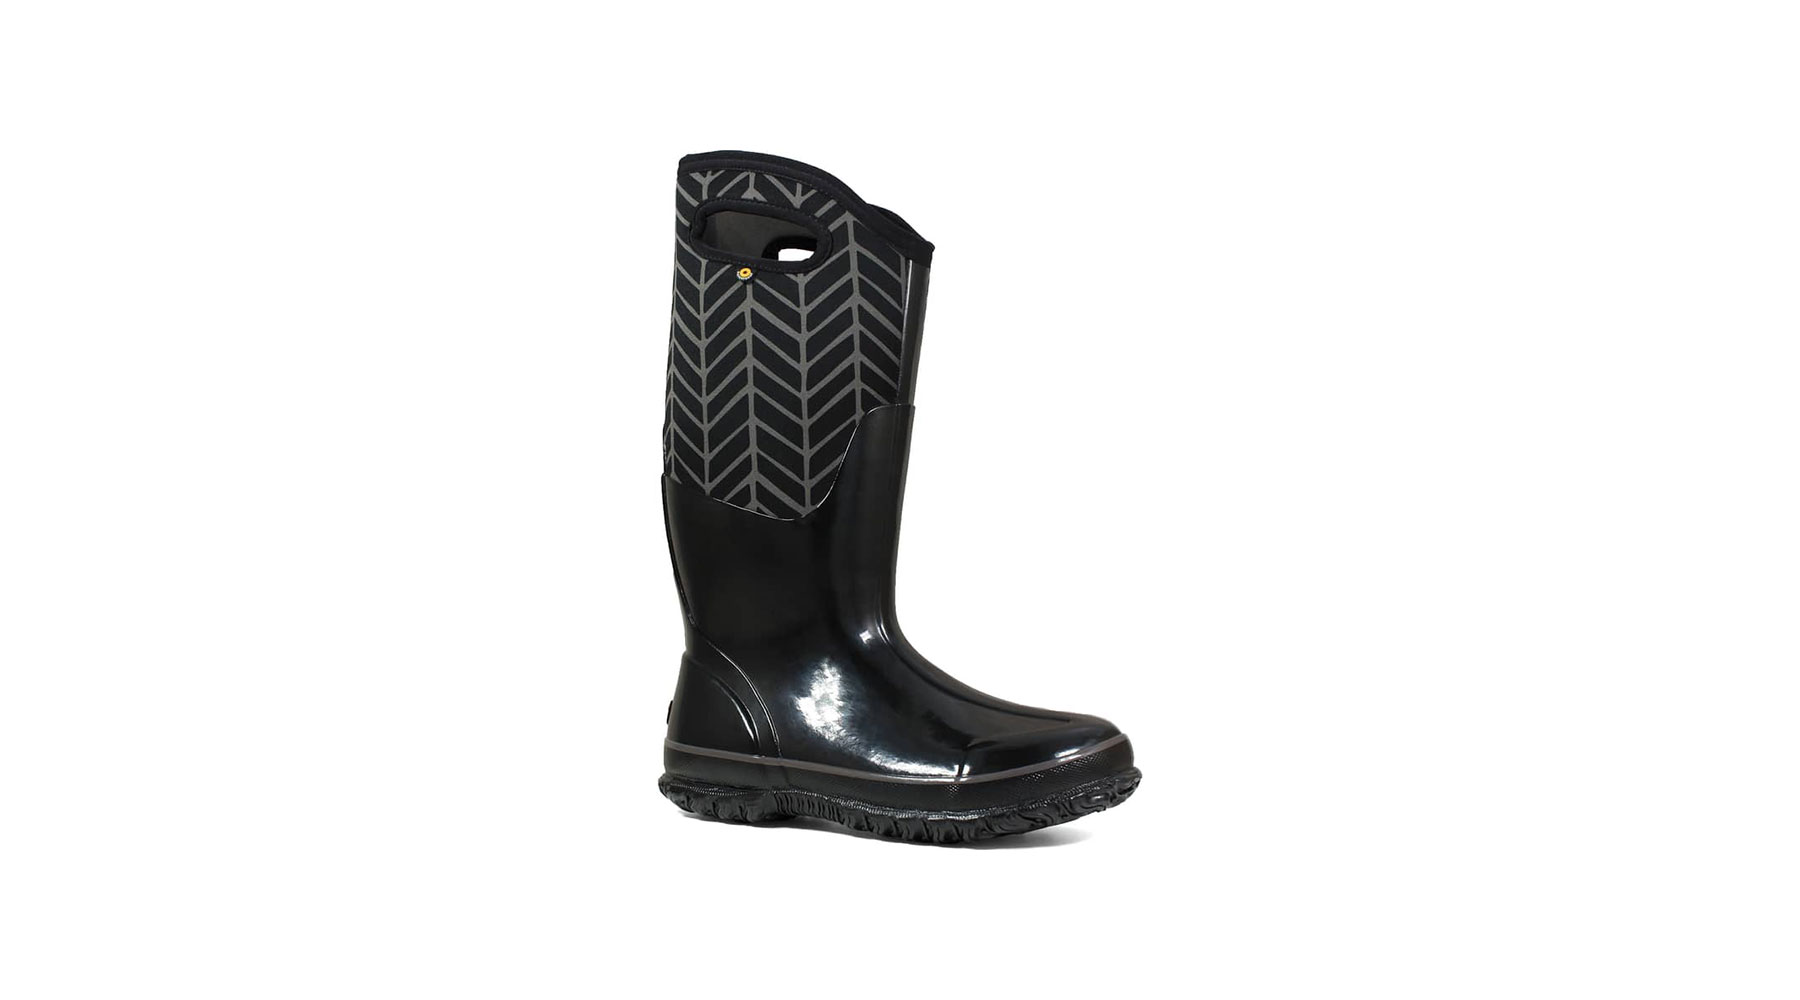 Bogs Classic Waterproof Snow Boots